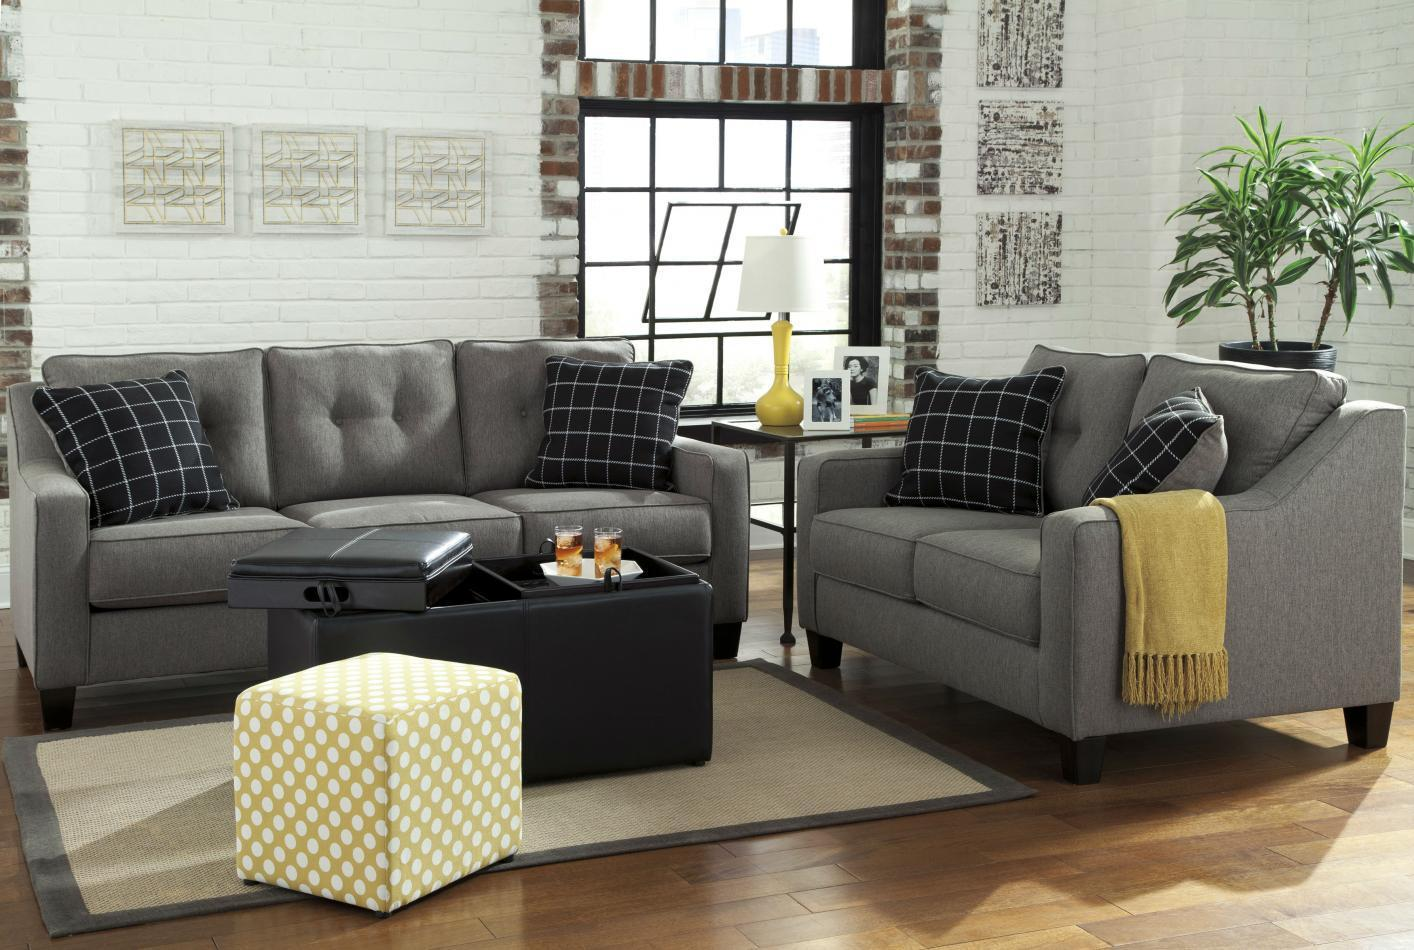 Memphis - Lifestyle Furniture